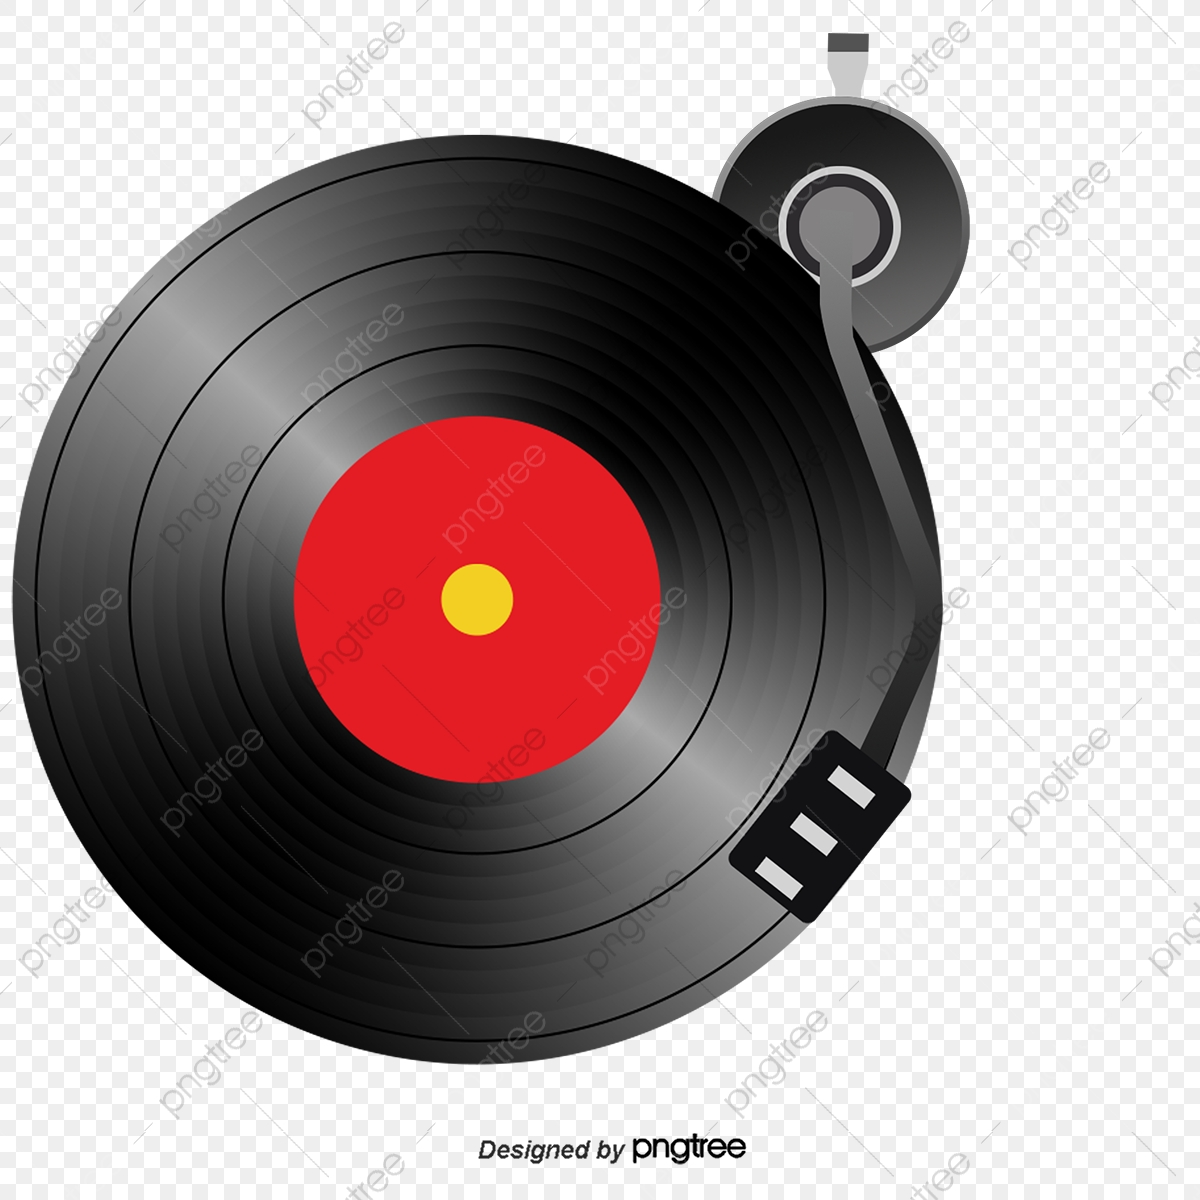 vector player vinyl old style music png transparent clipart image and psd file for free download https pngtree com freepng vector player 2877454 html